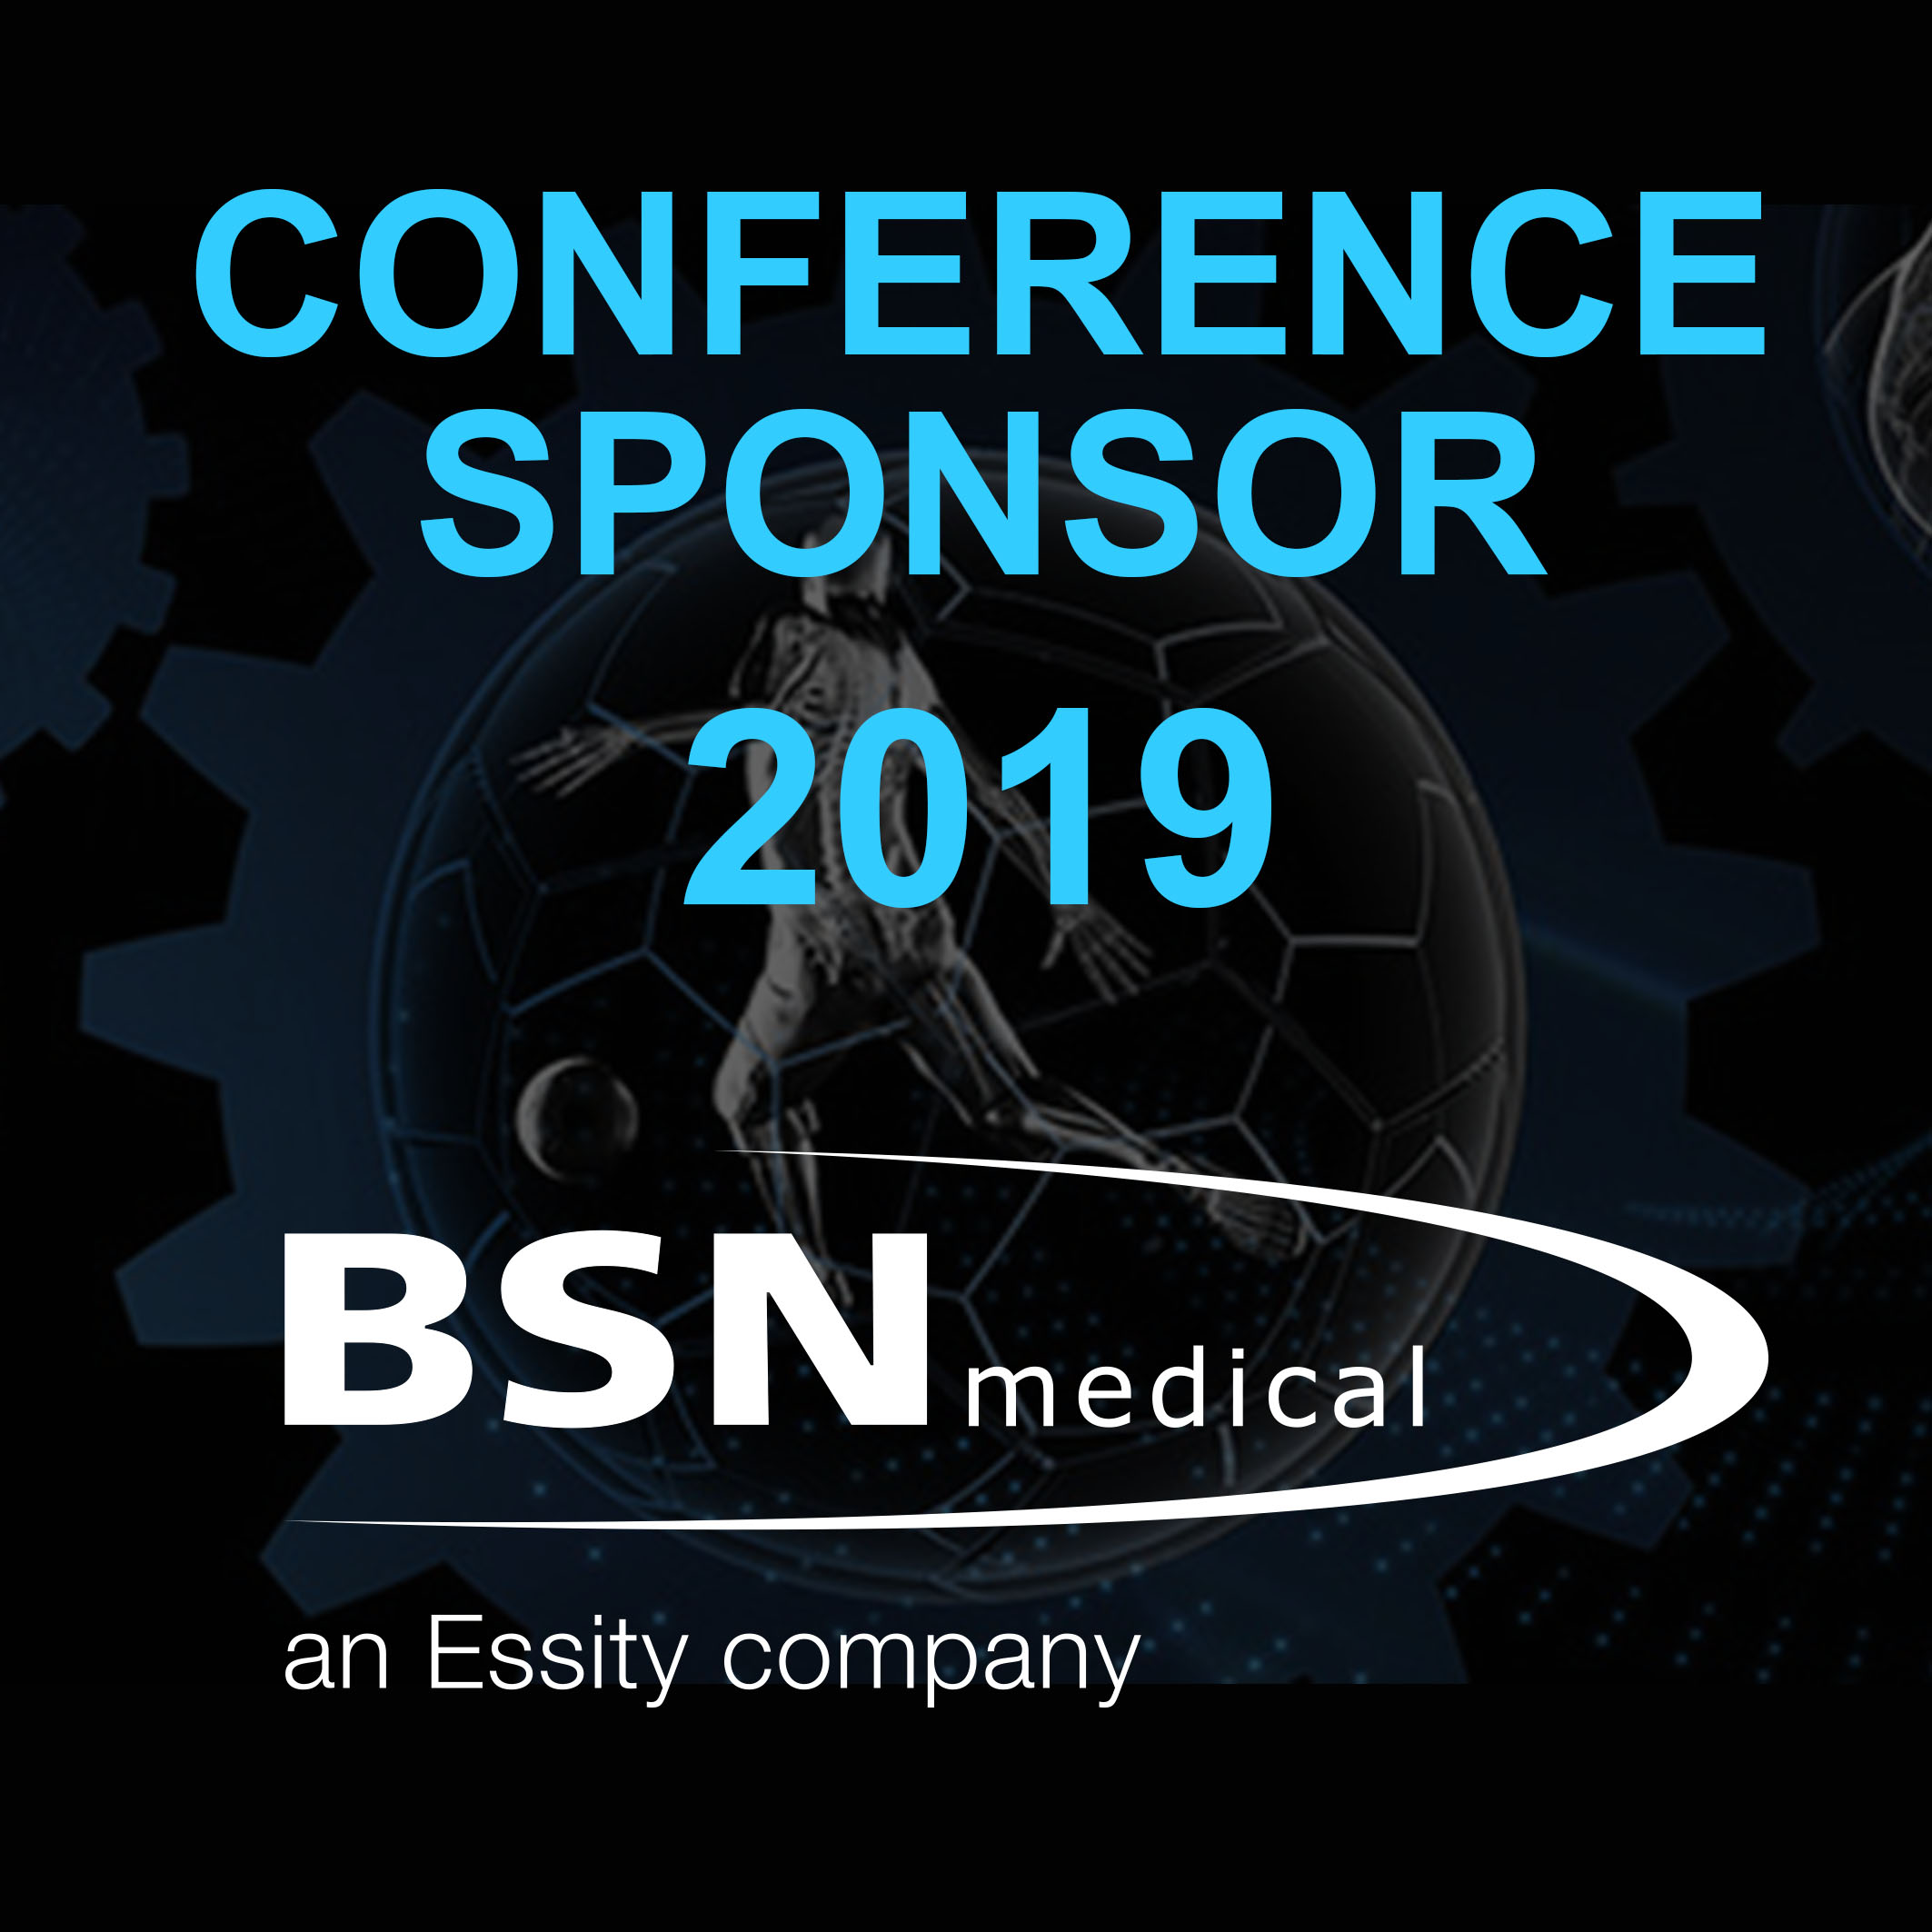 BSN CONFERENCE SPONSOR flat